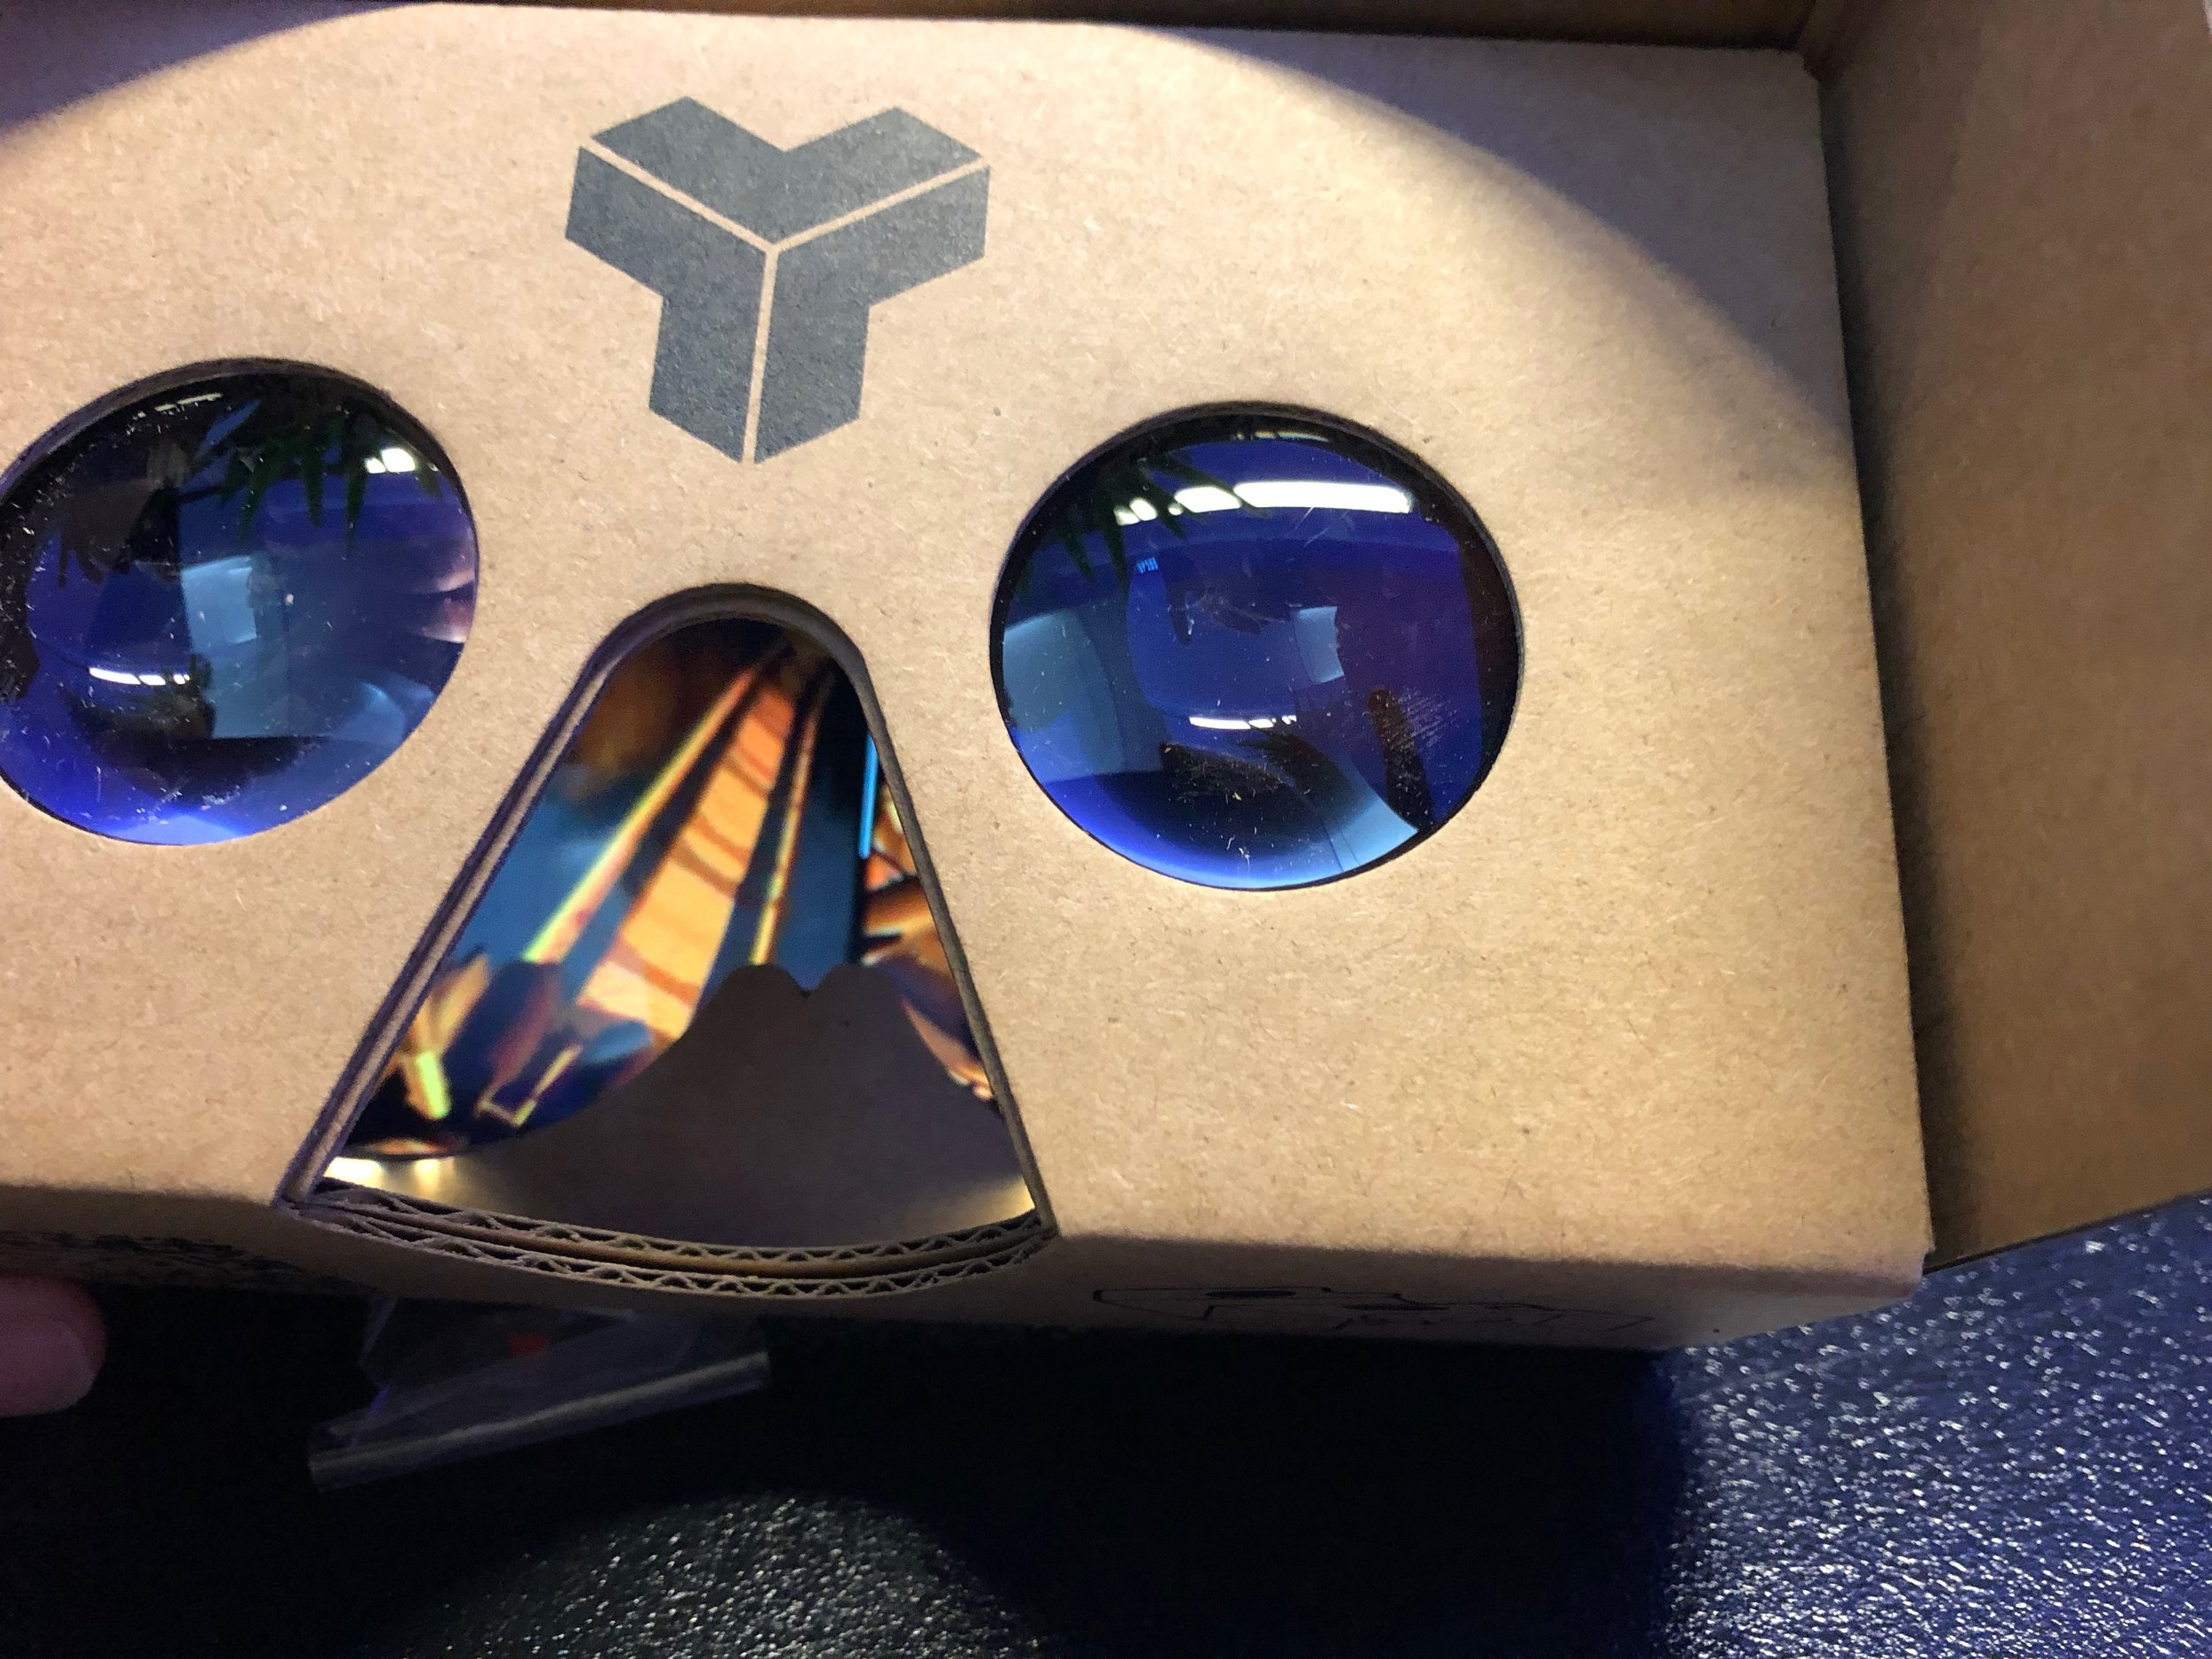 Put your Phone in your nice Cardboard glasses!